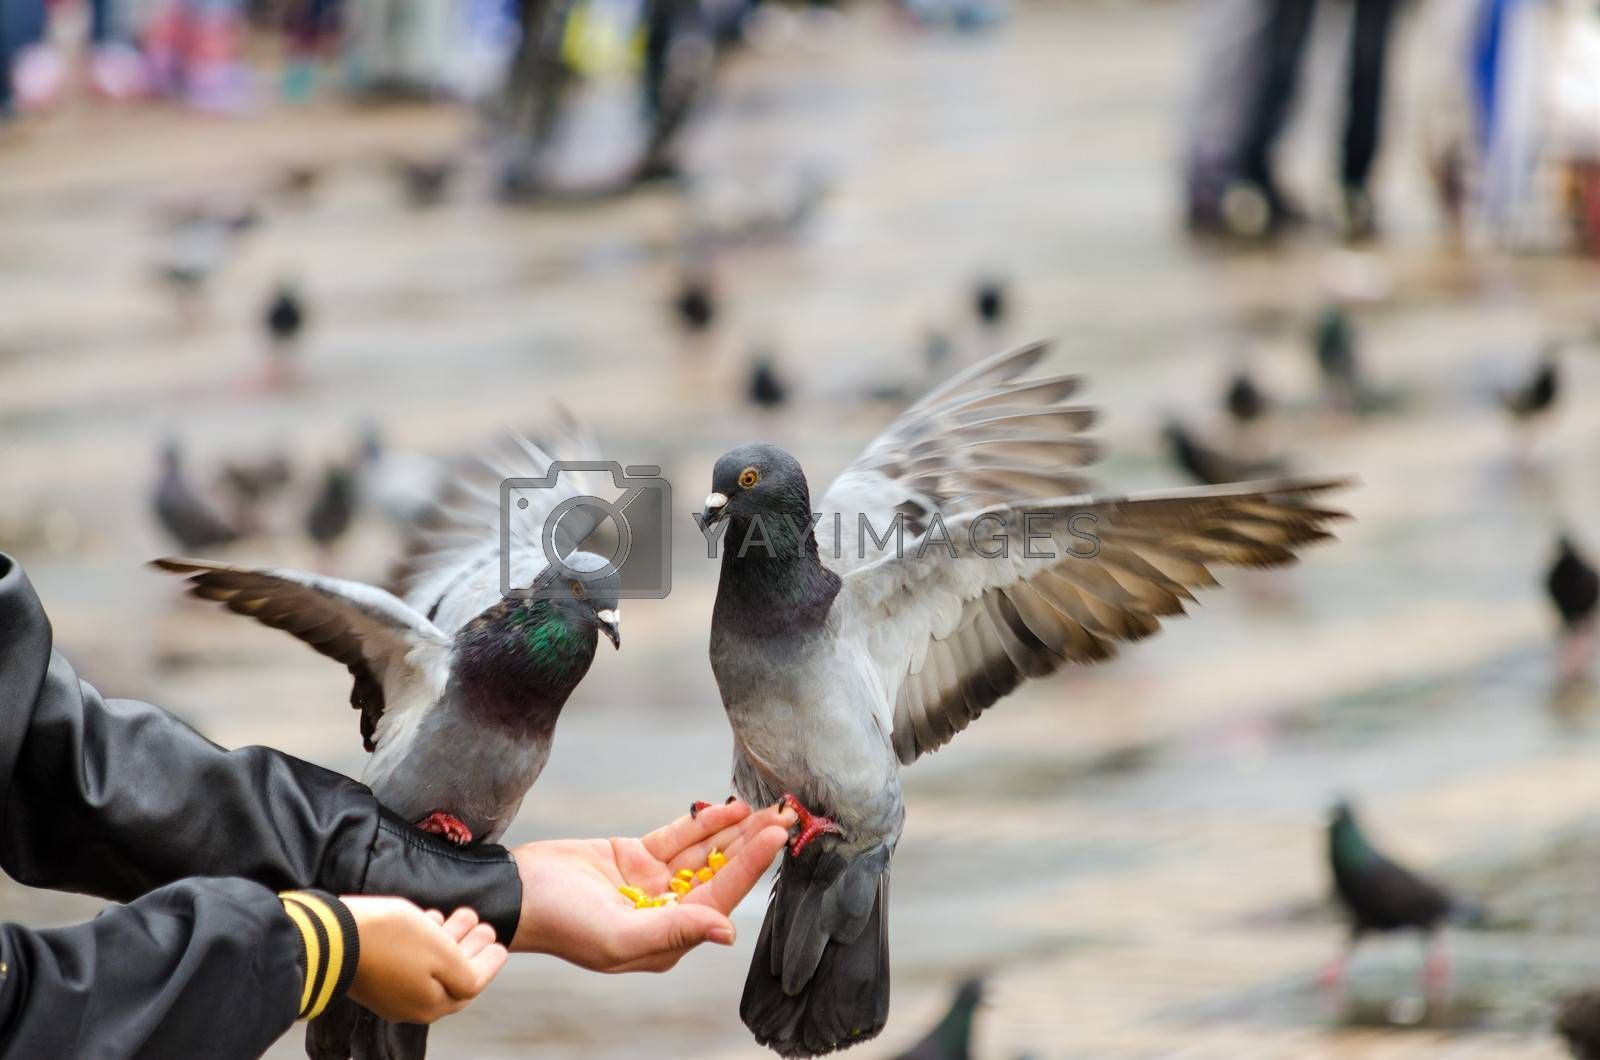 Pigeons eating corn from a hand in Bogota, Colombia